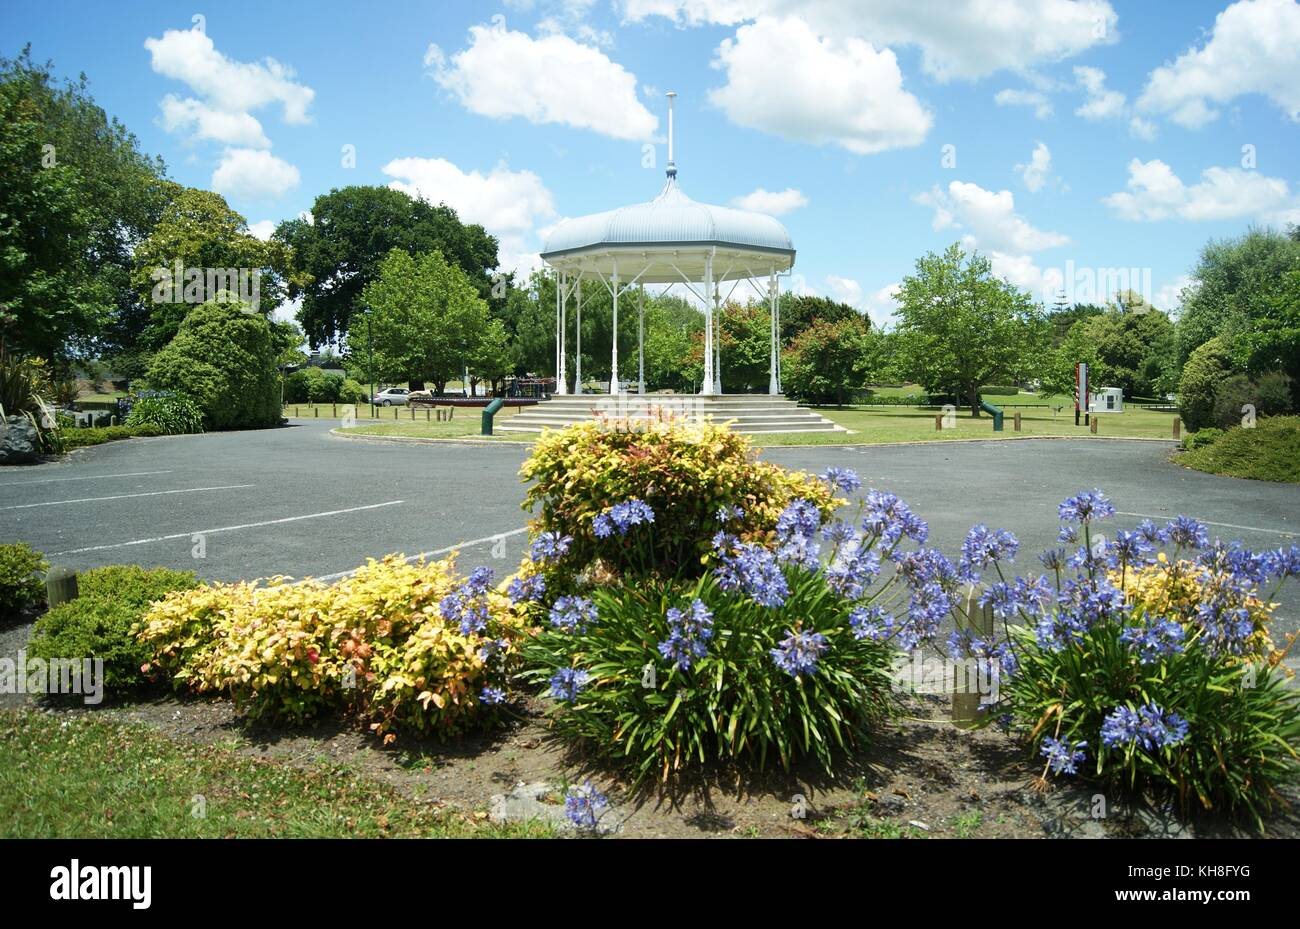 The bandstand at Ngaruswia, New Zealand - Stock Image